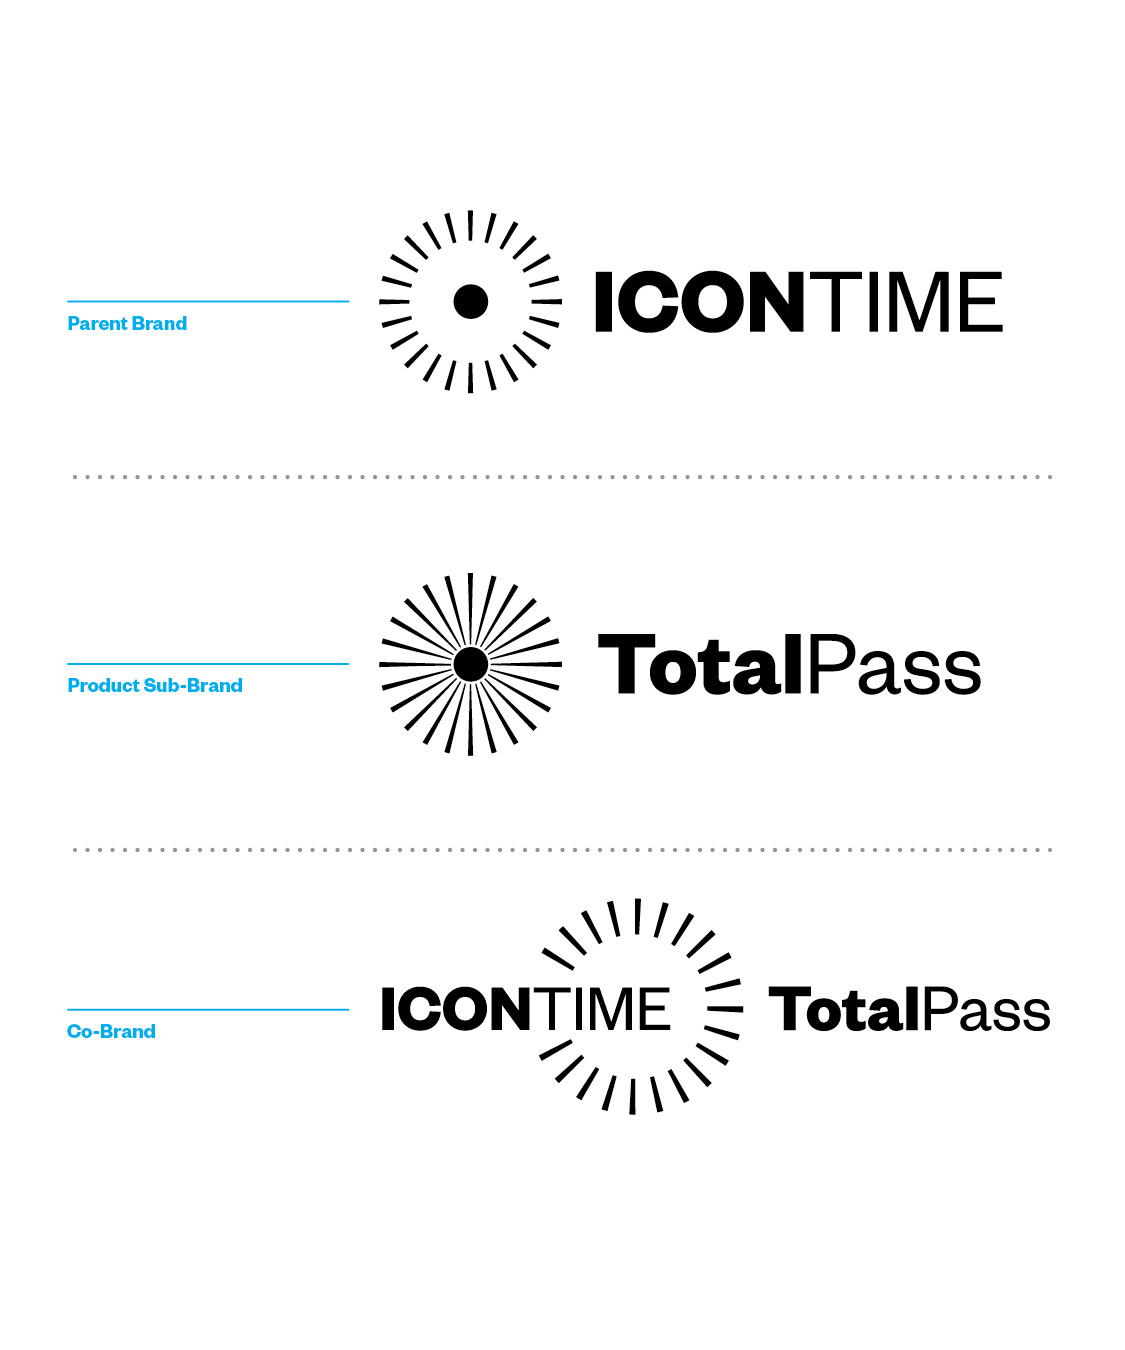 icontime-system-2.jpg